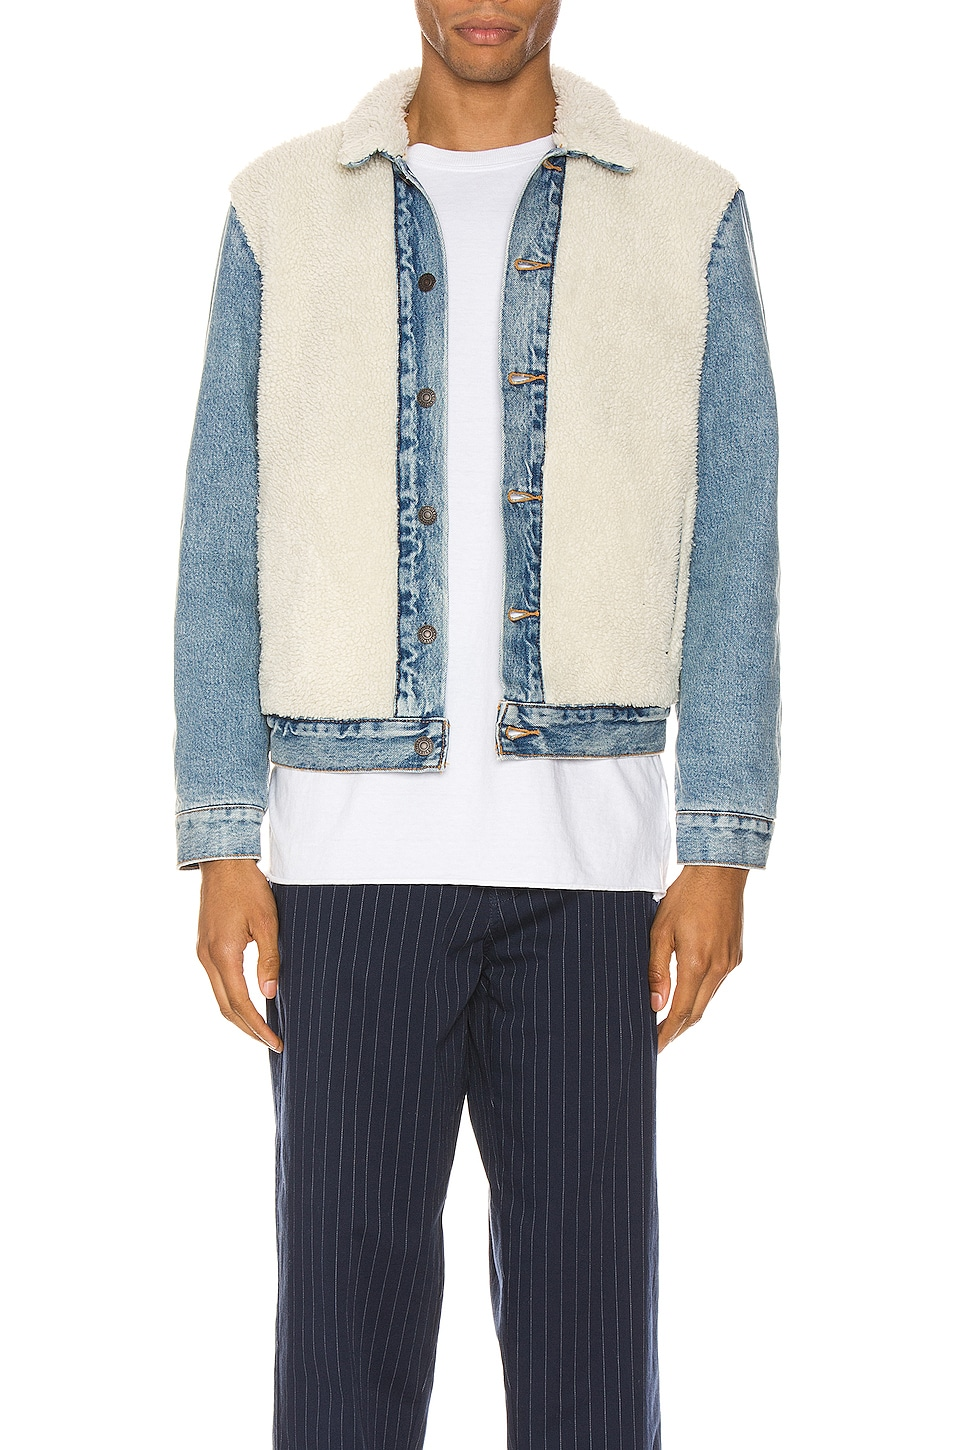 LEVI'S Premium Sherpa Panel Trucker in So Sheepy